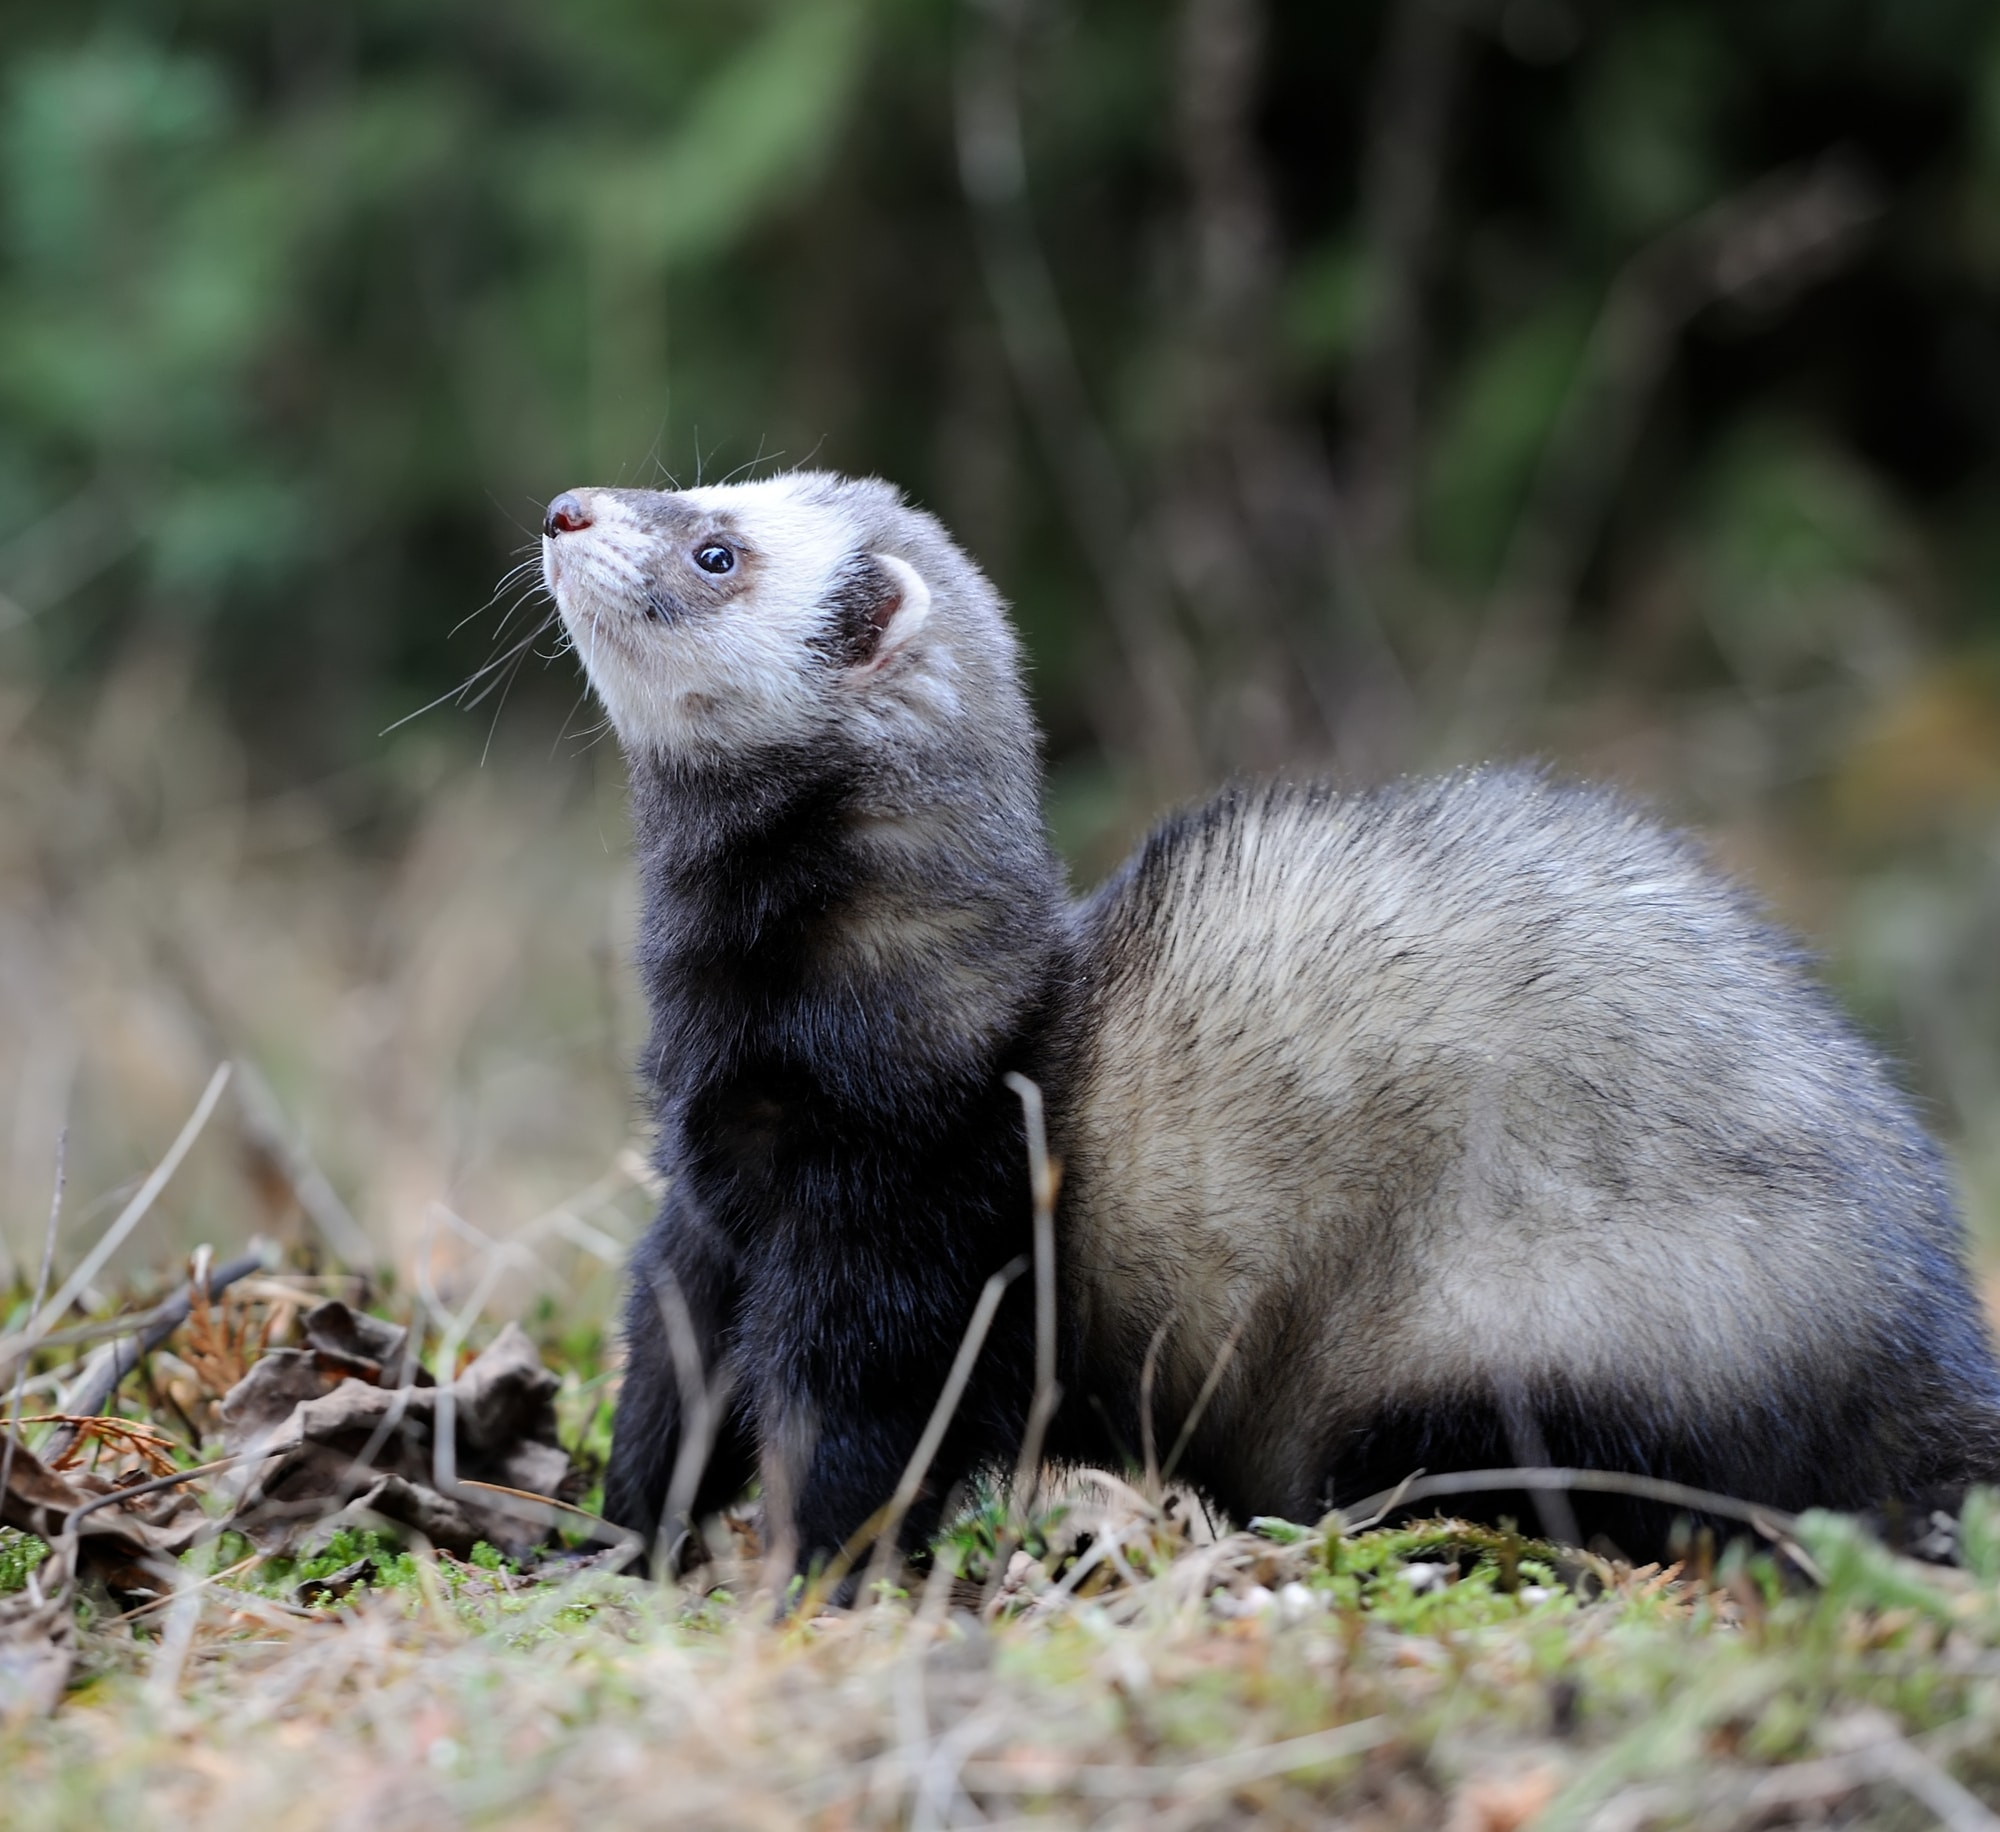 A wonderful polecat in its woodland surroundings